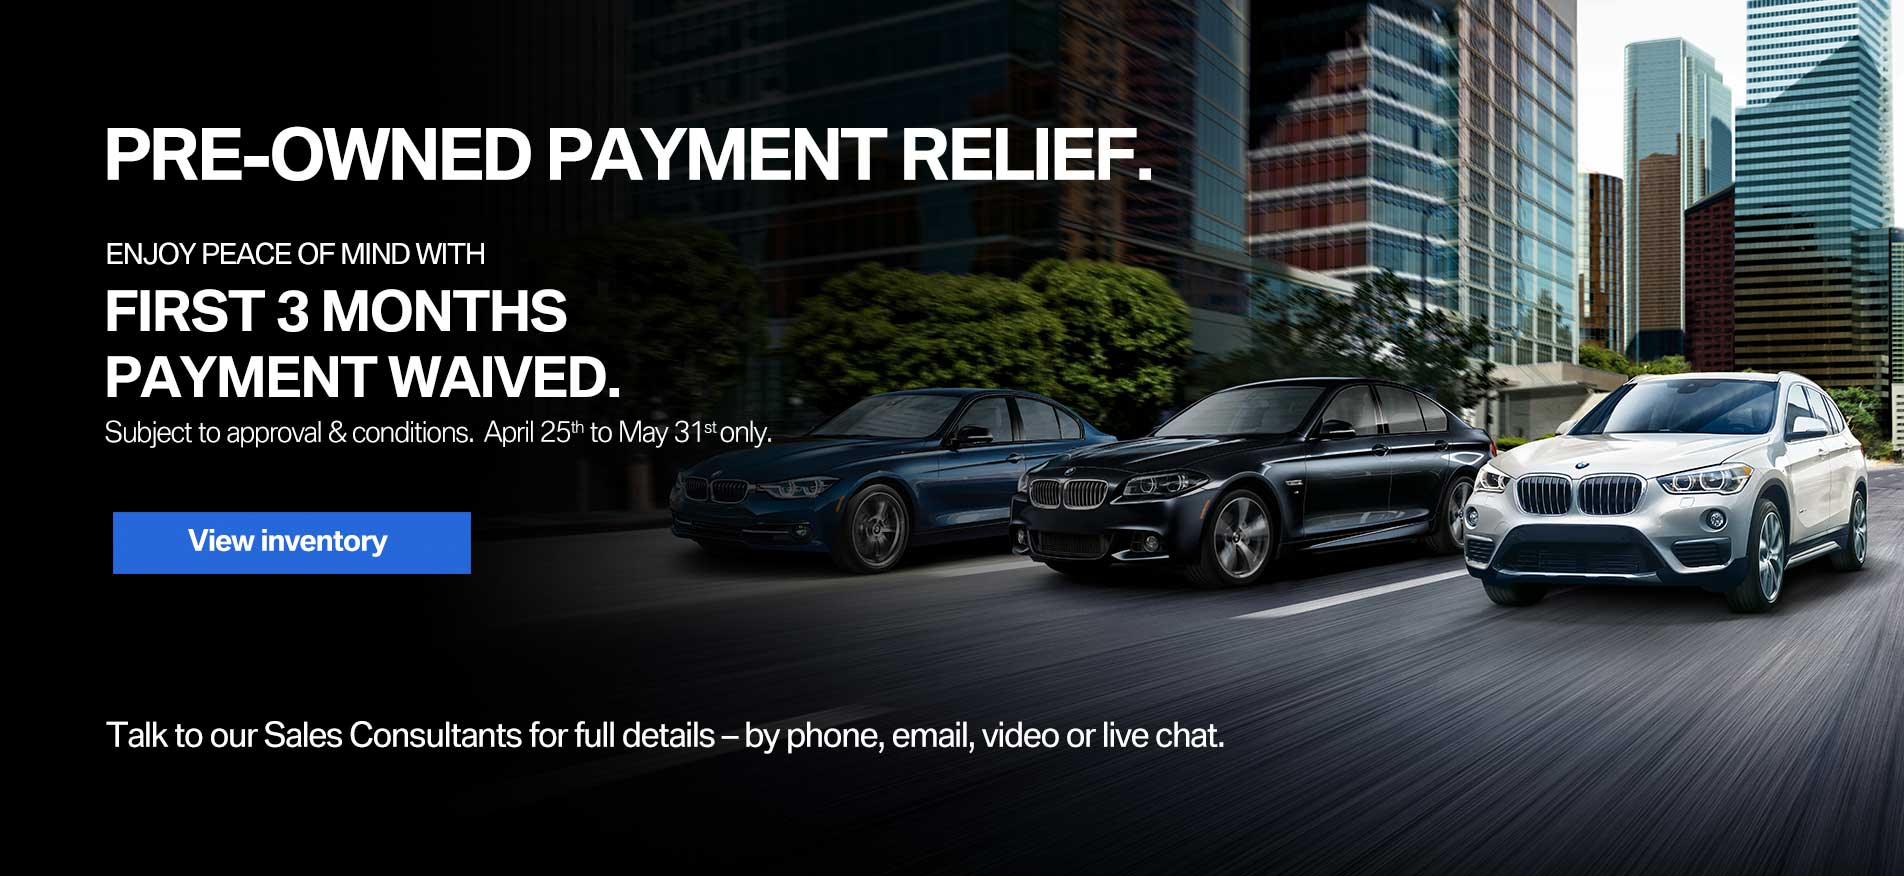 Auto West BMW Pre-Owned Payment Relief Offer